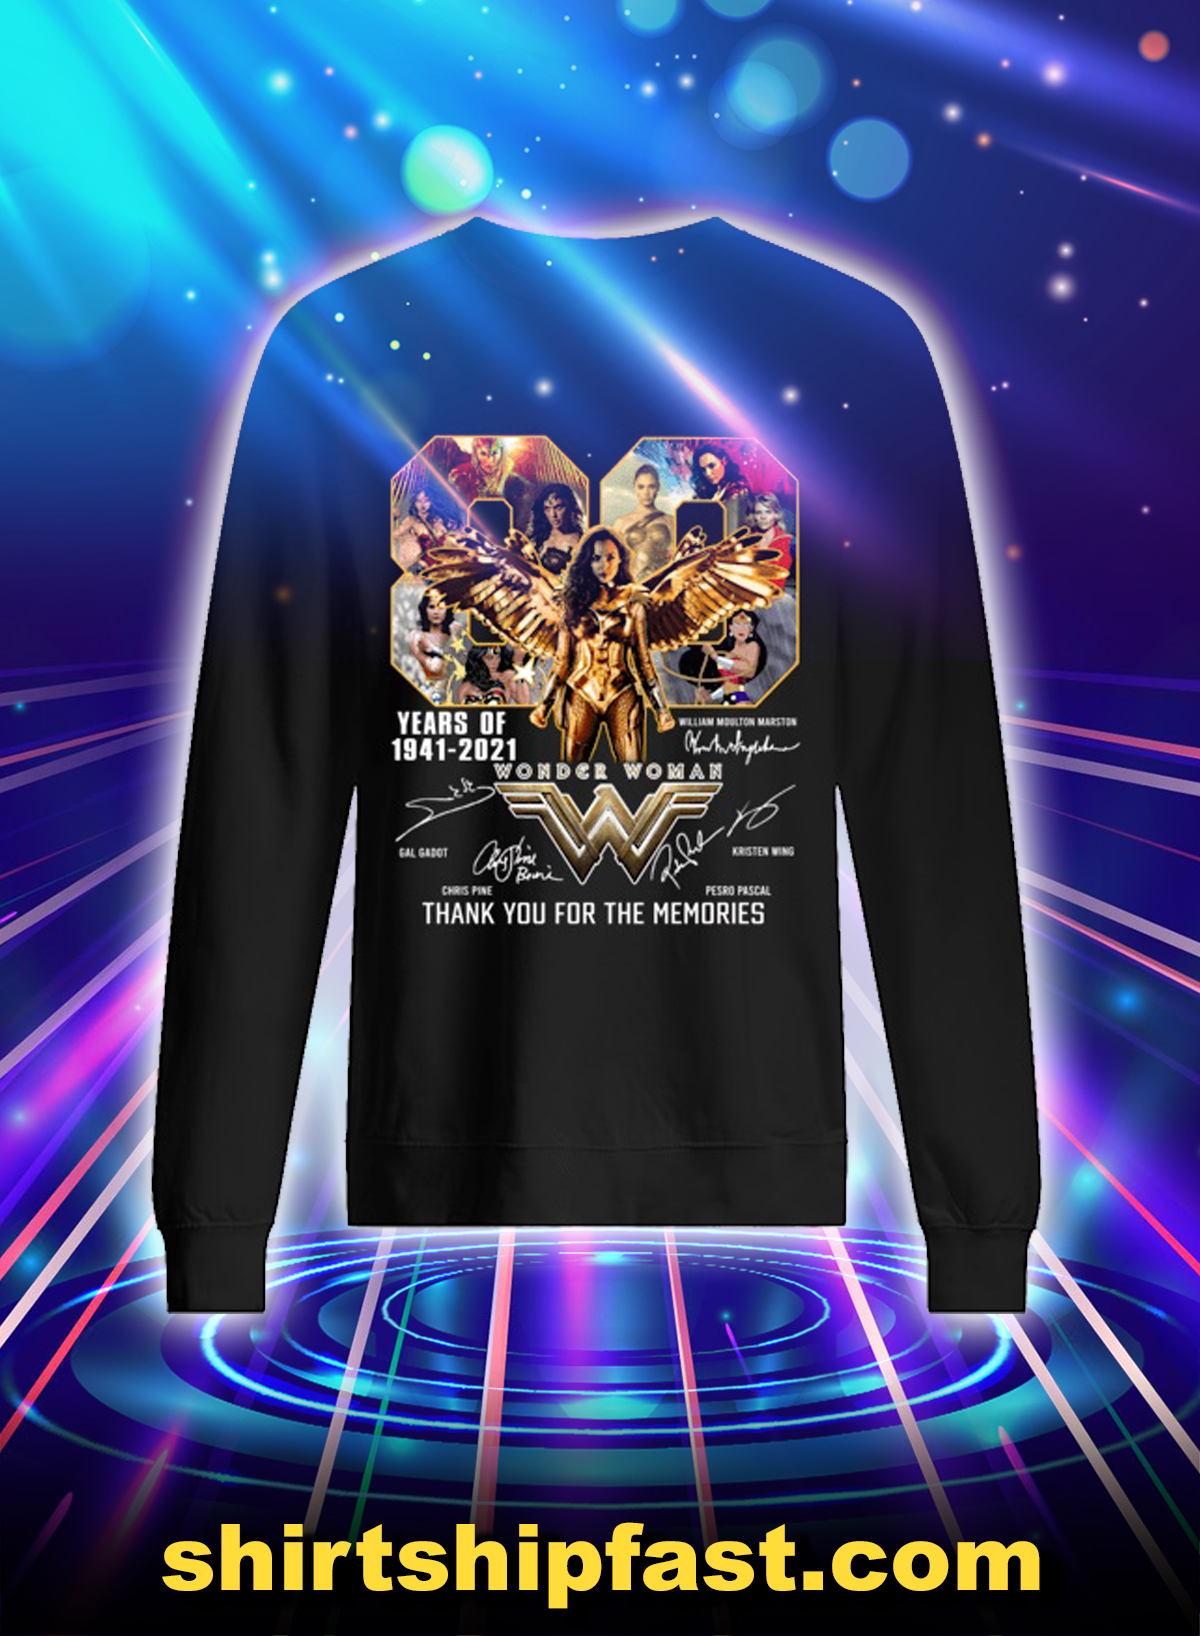 Wonder woman 80 years of 1841 2021 thank you for the memories sweatshirt